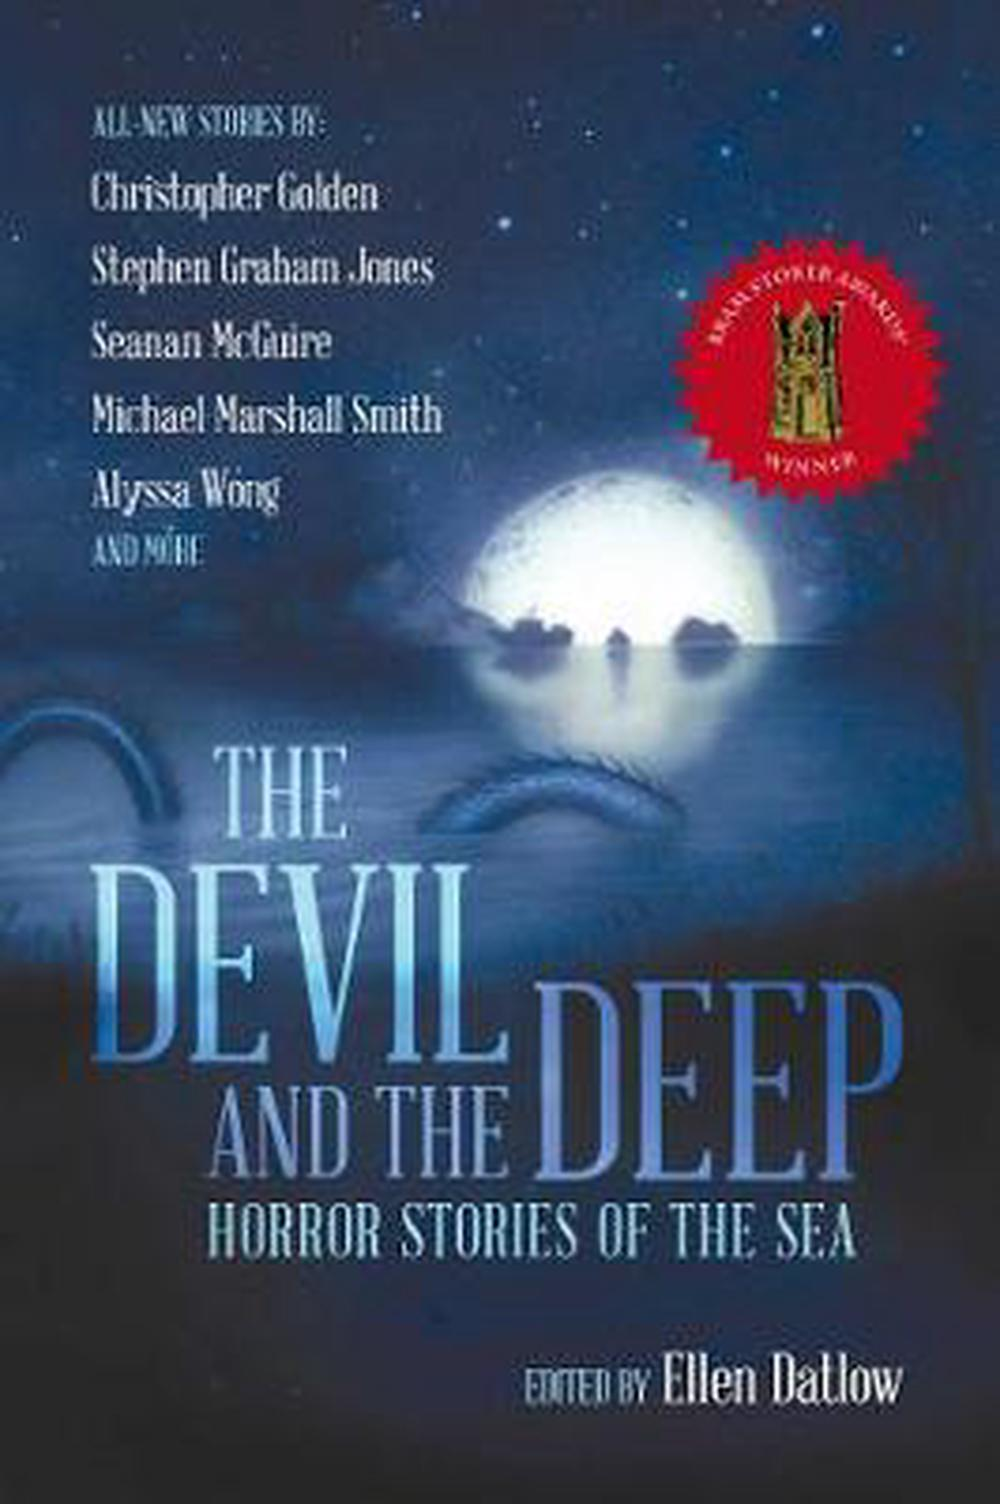 Devil and the Deep: Horror Stories of the Sea by Ellen Datlow, ISBN: 9781597809467